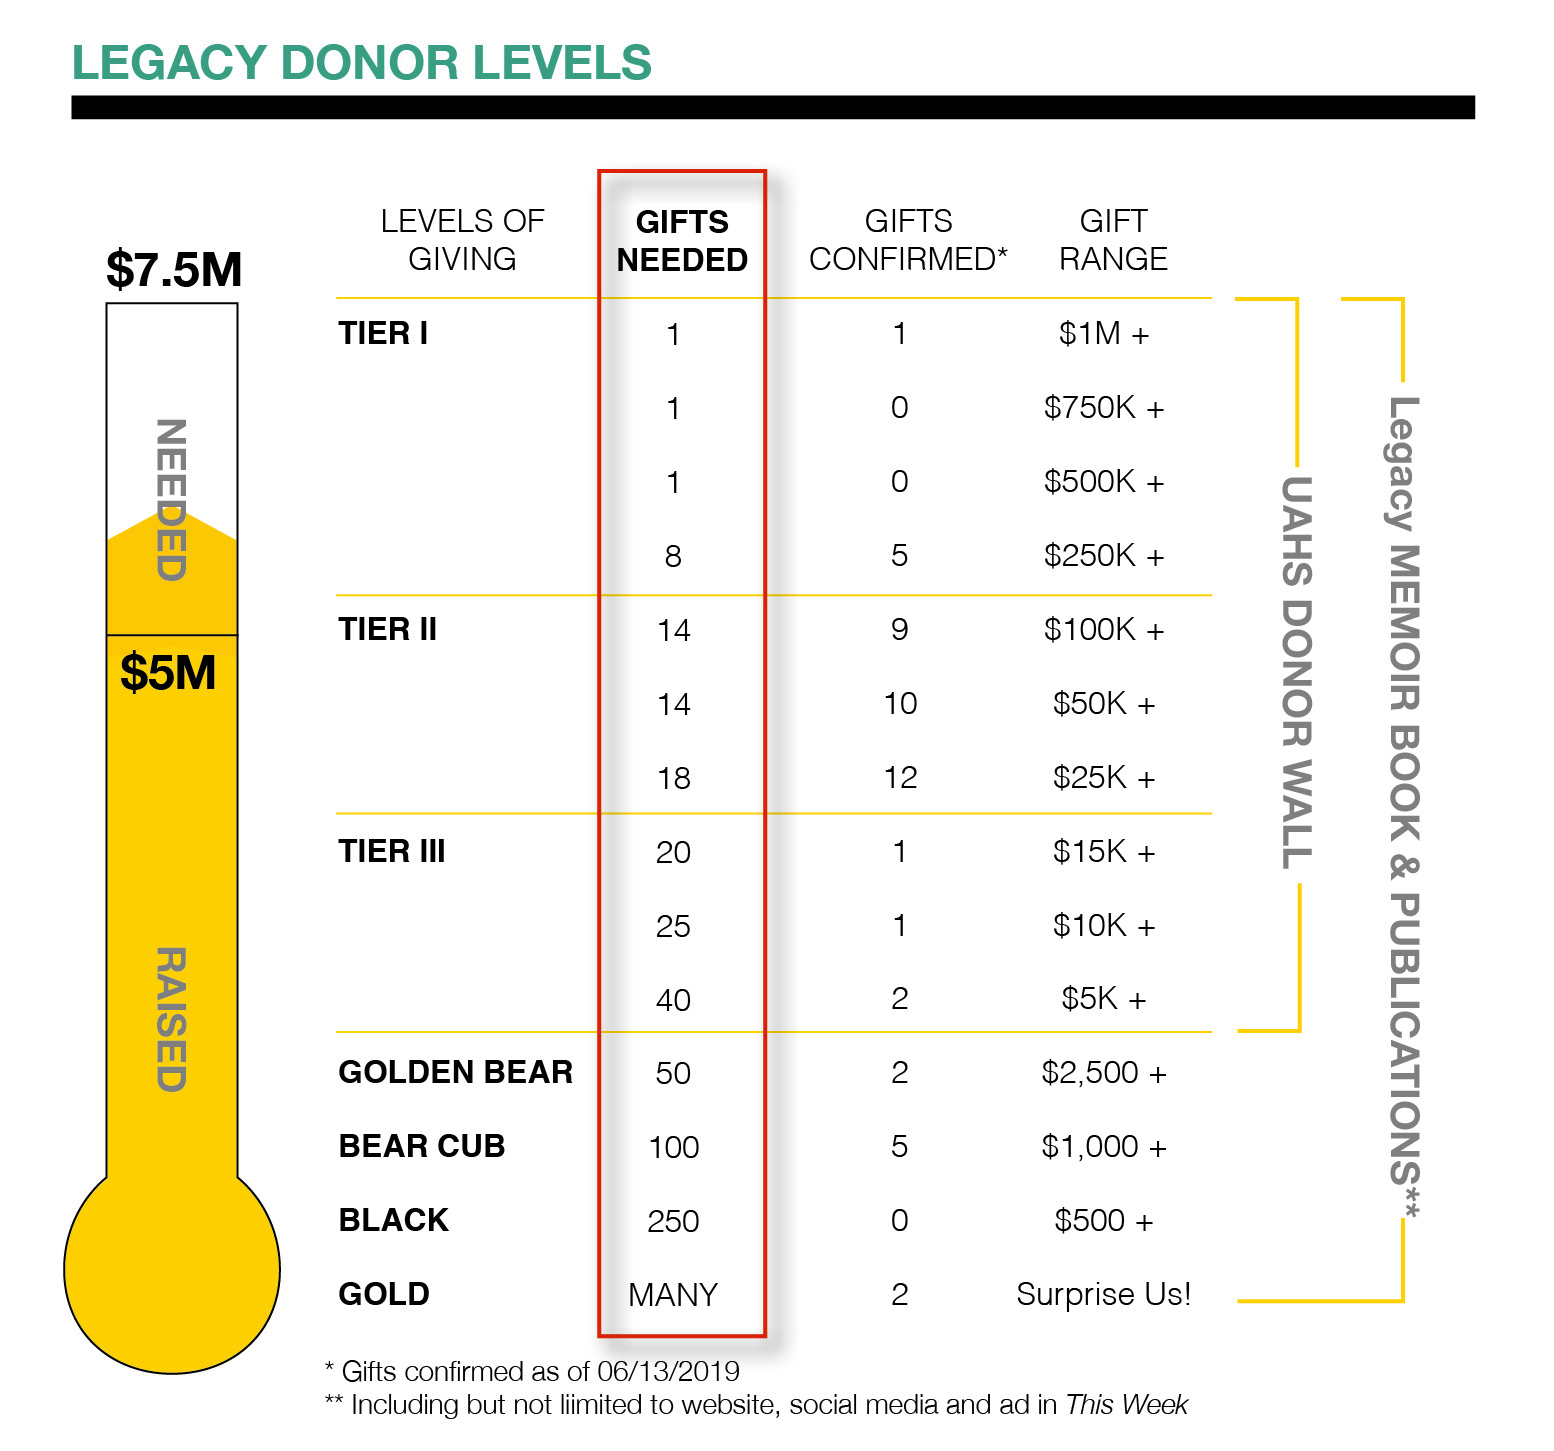 A graphic showing the Legacy donor levels and progress